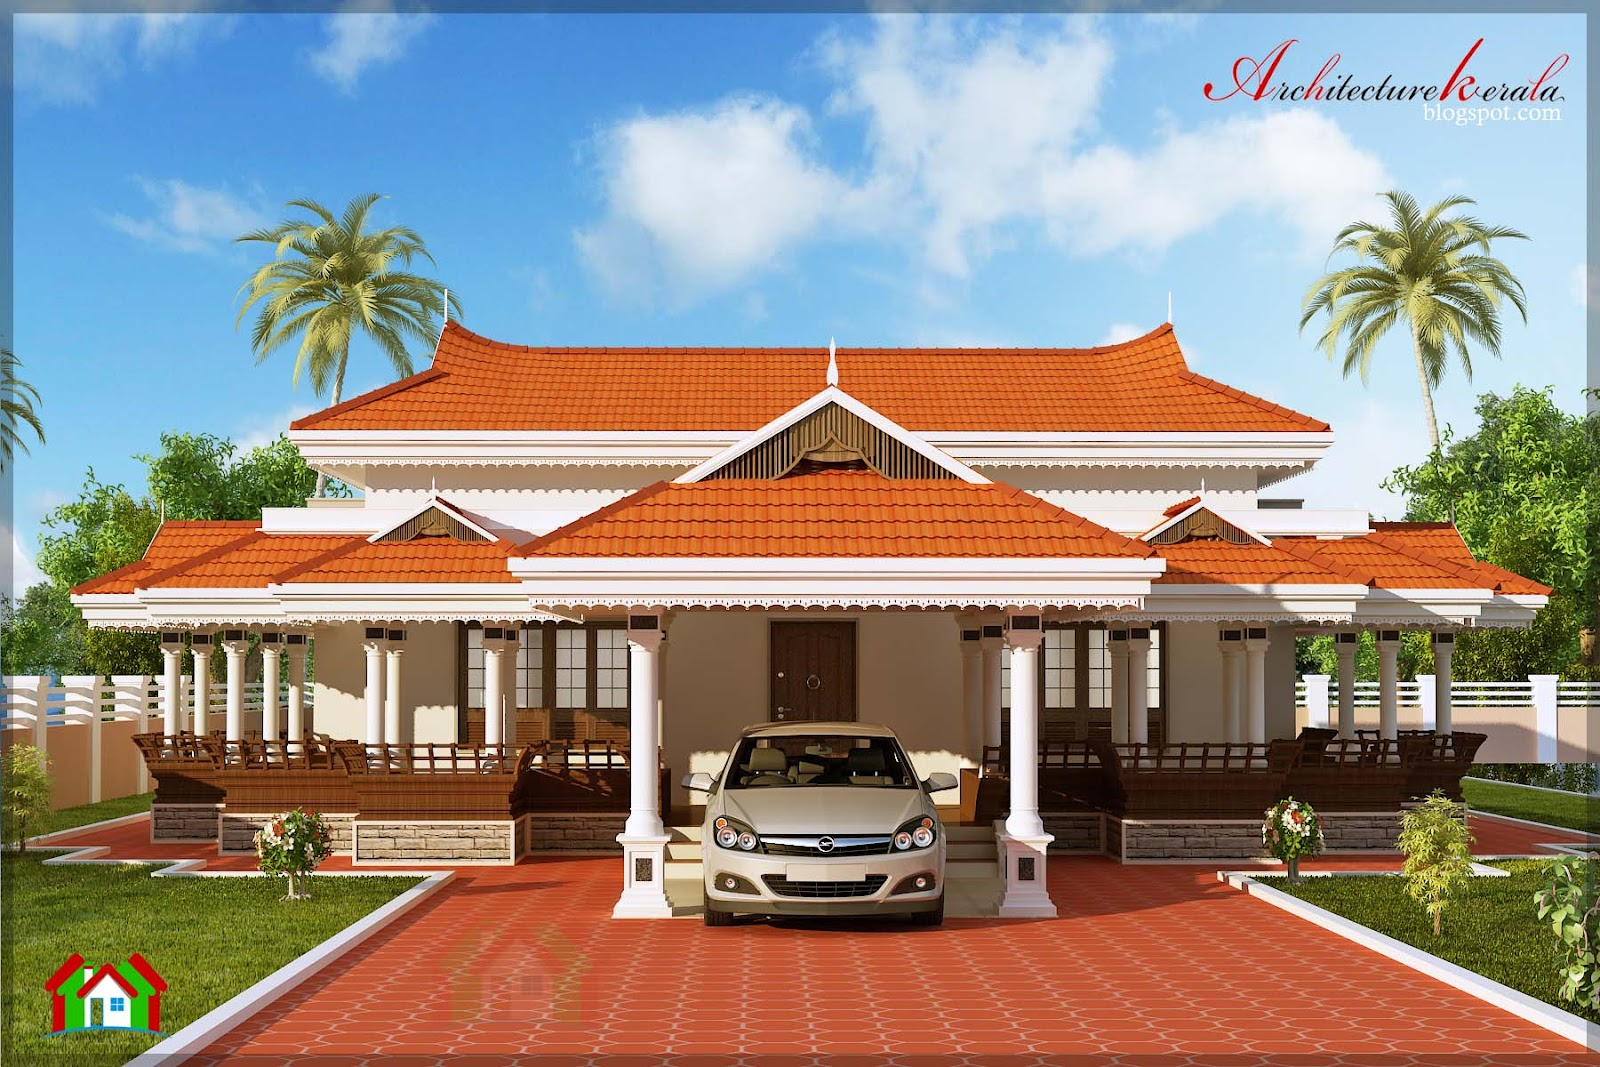 Kerala Exterior Model Homes talentneedscom